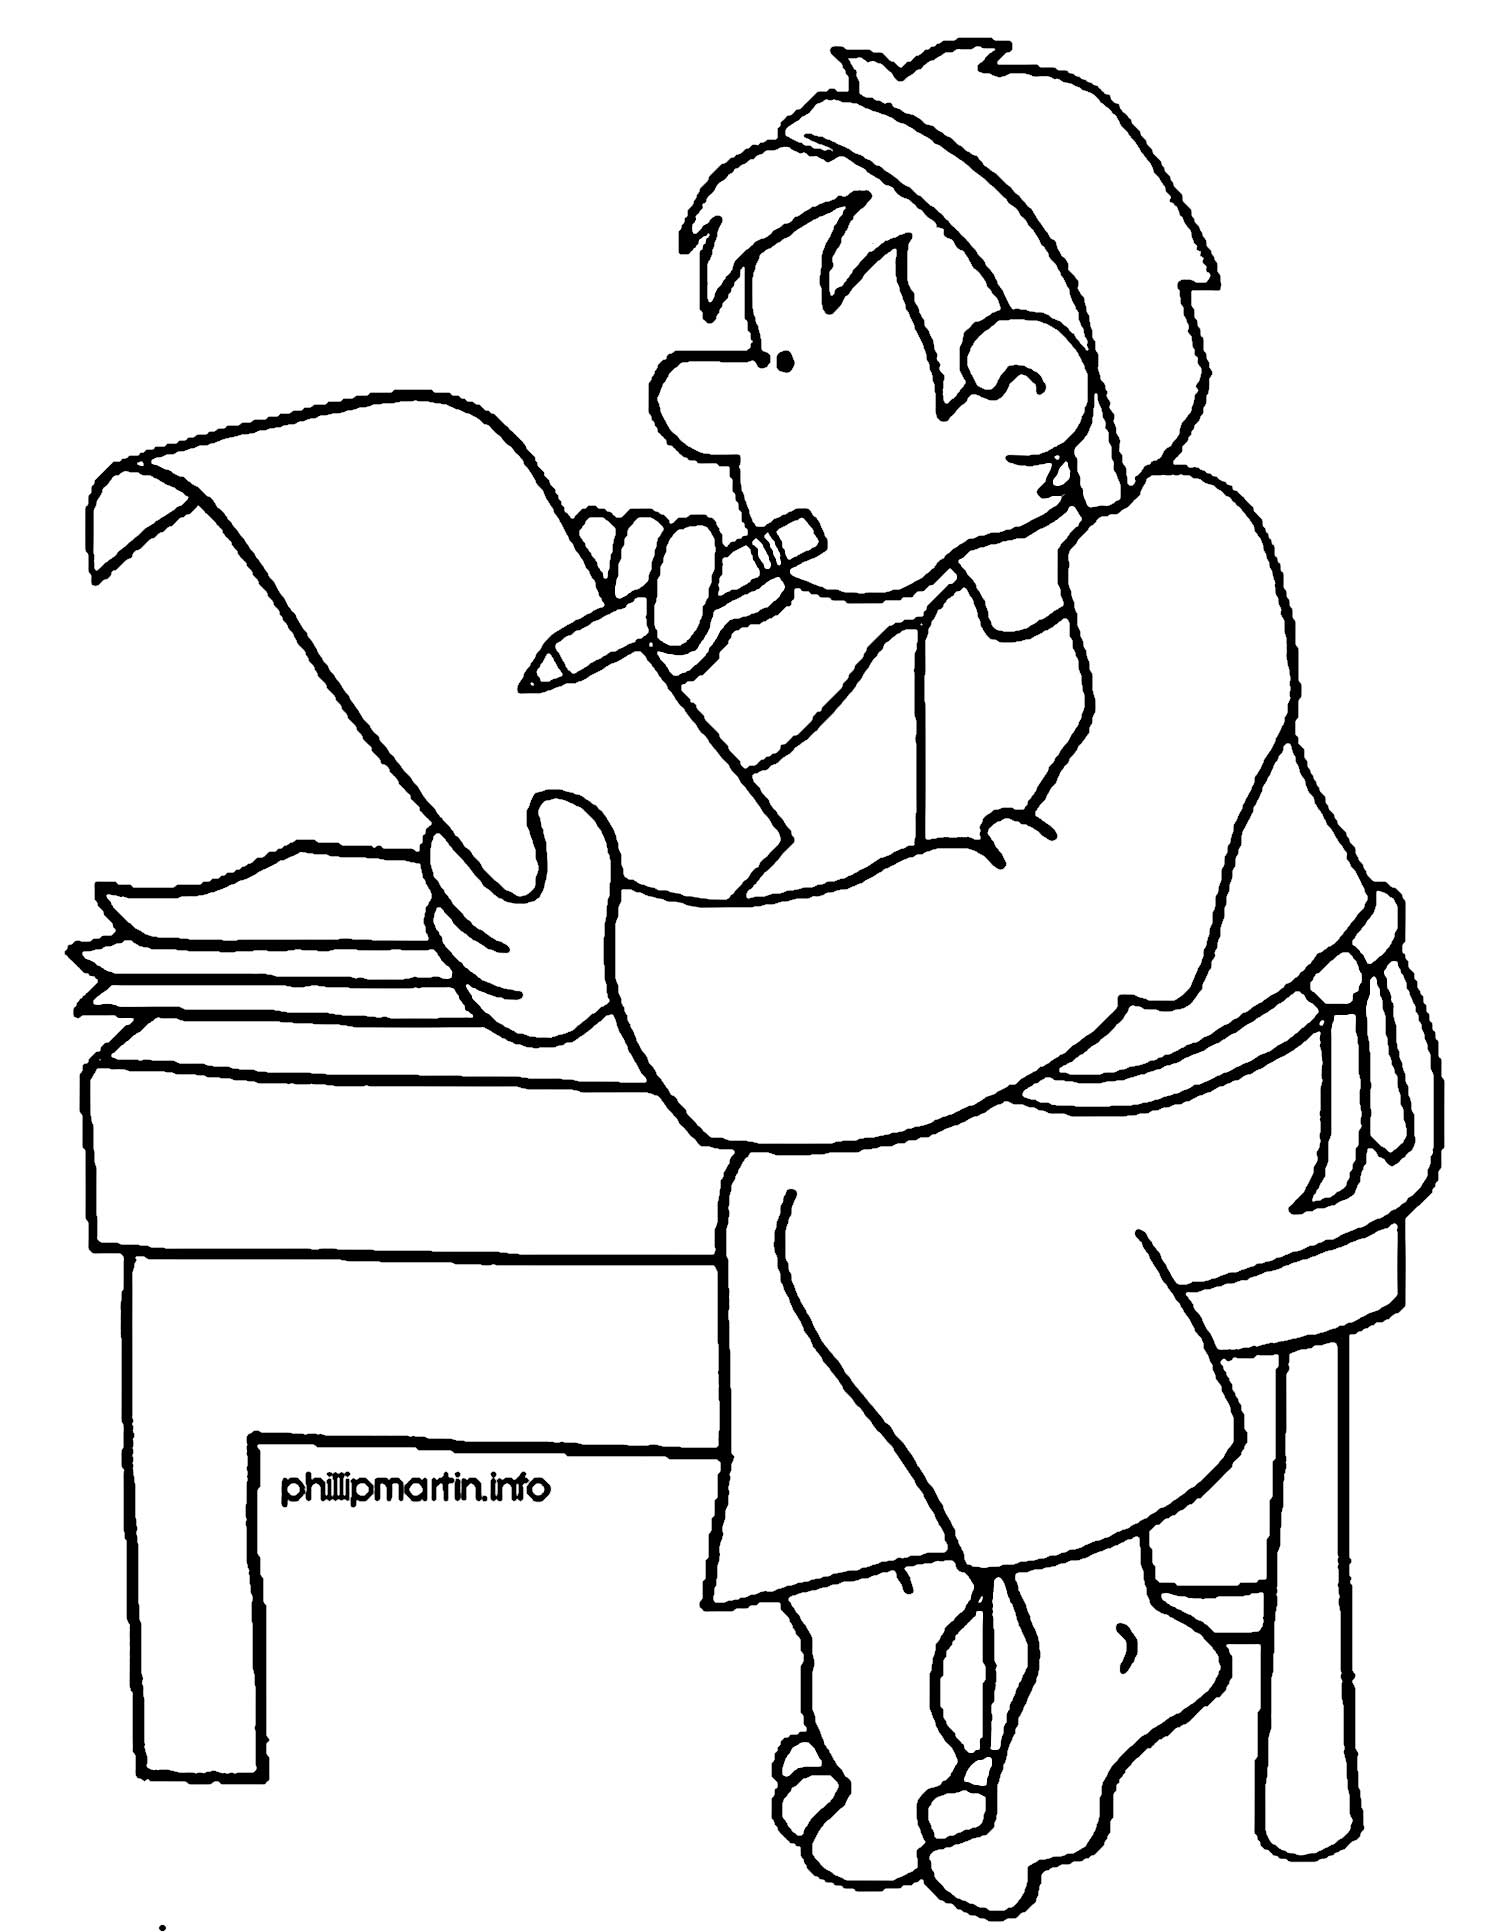 apostle paul coloring page shipwrecked paul coloring pages coloring home page paul apostle coloring